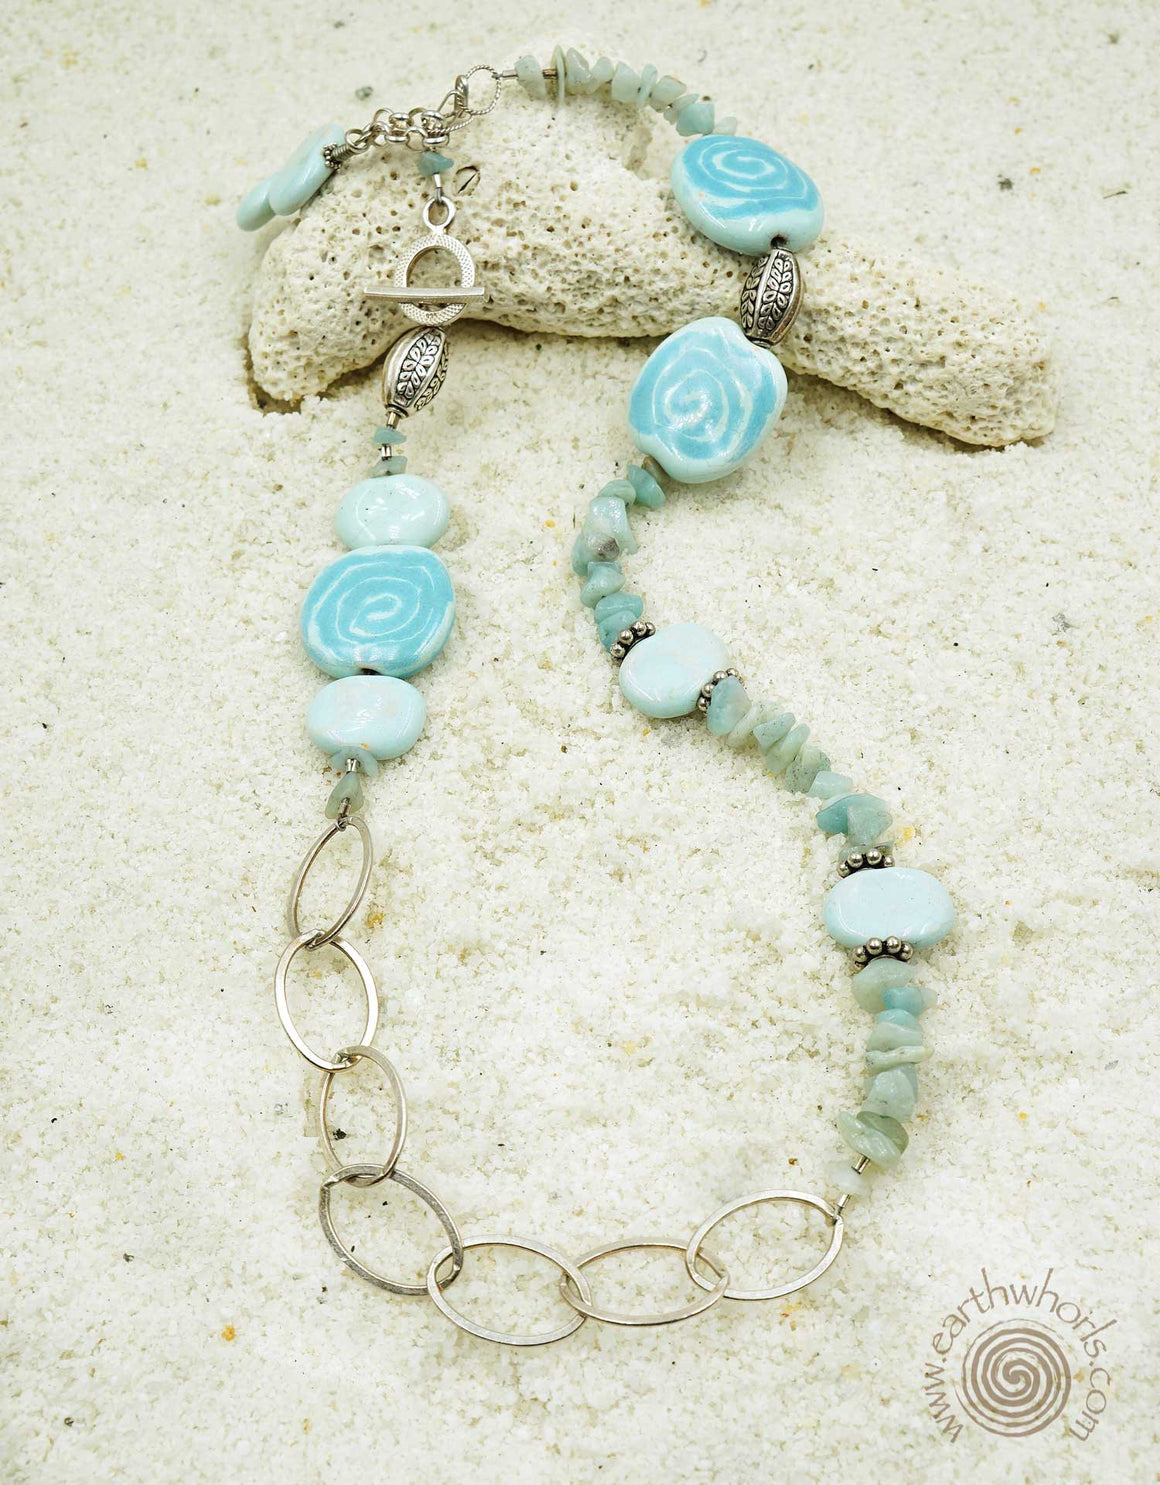 African Clay Bead, Aquamarine & Sterling Silver Necklace - EarthWhorls, LLC